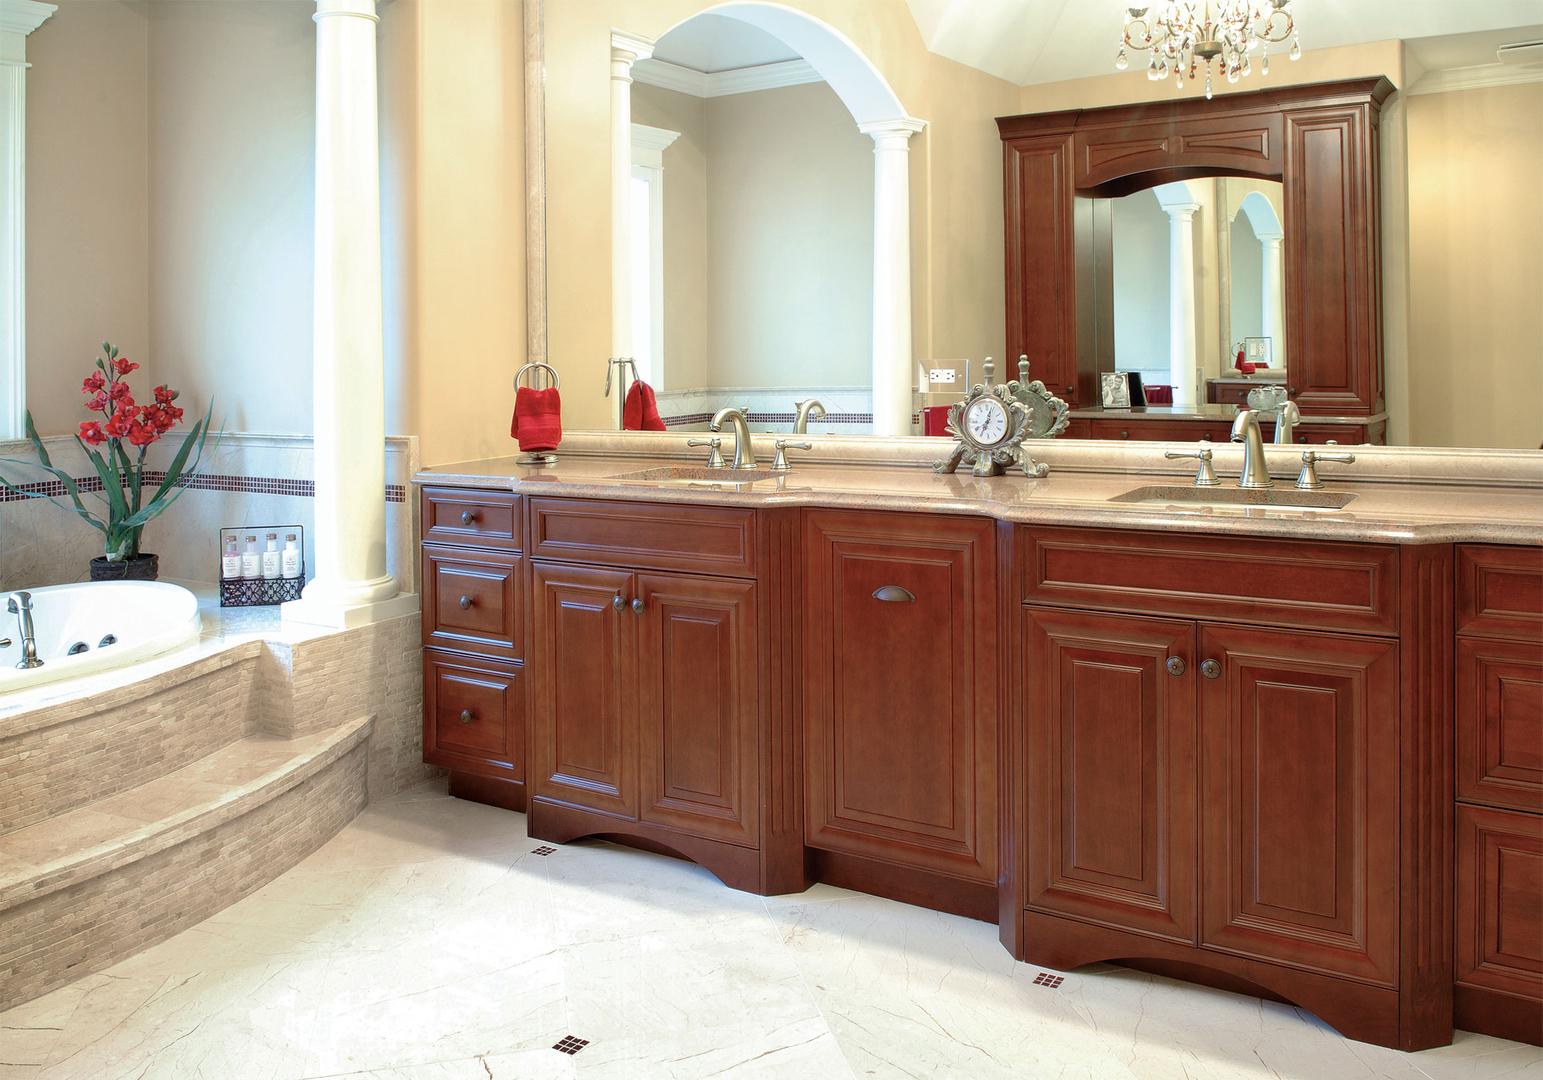 Used Bathroom Sinks Kitchen And Bathroom Cabinets